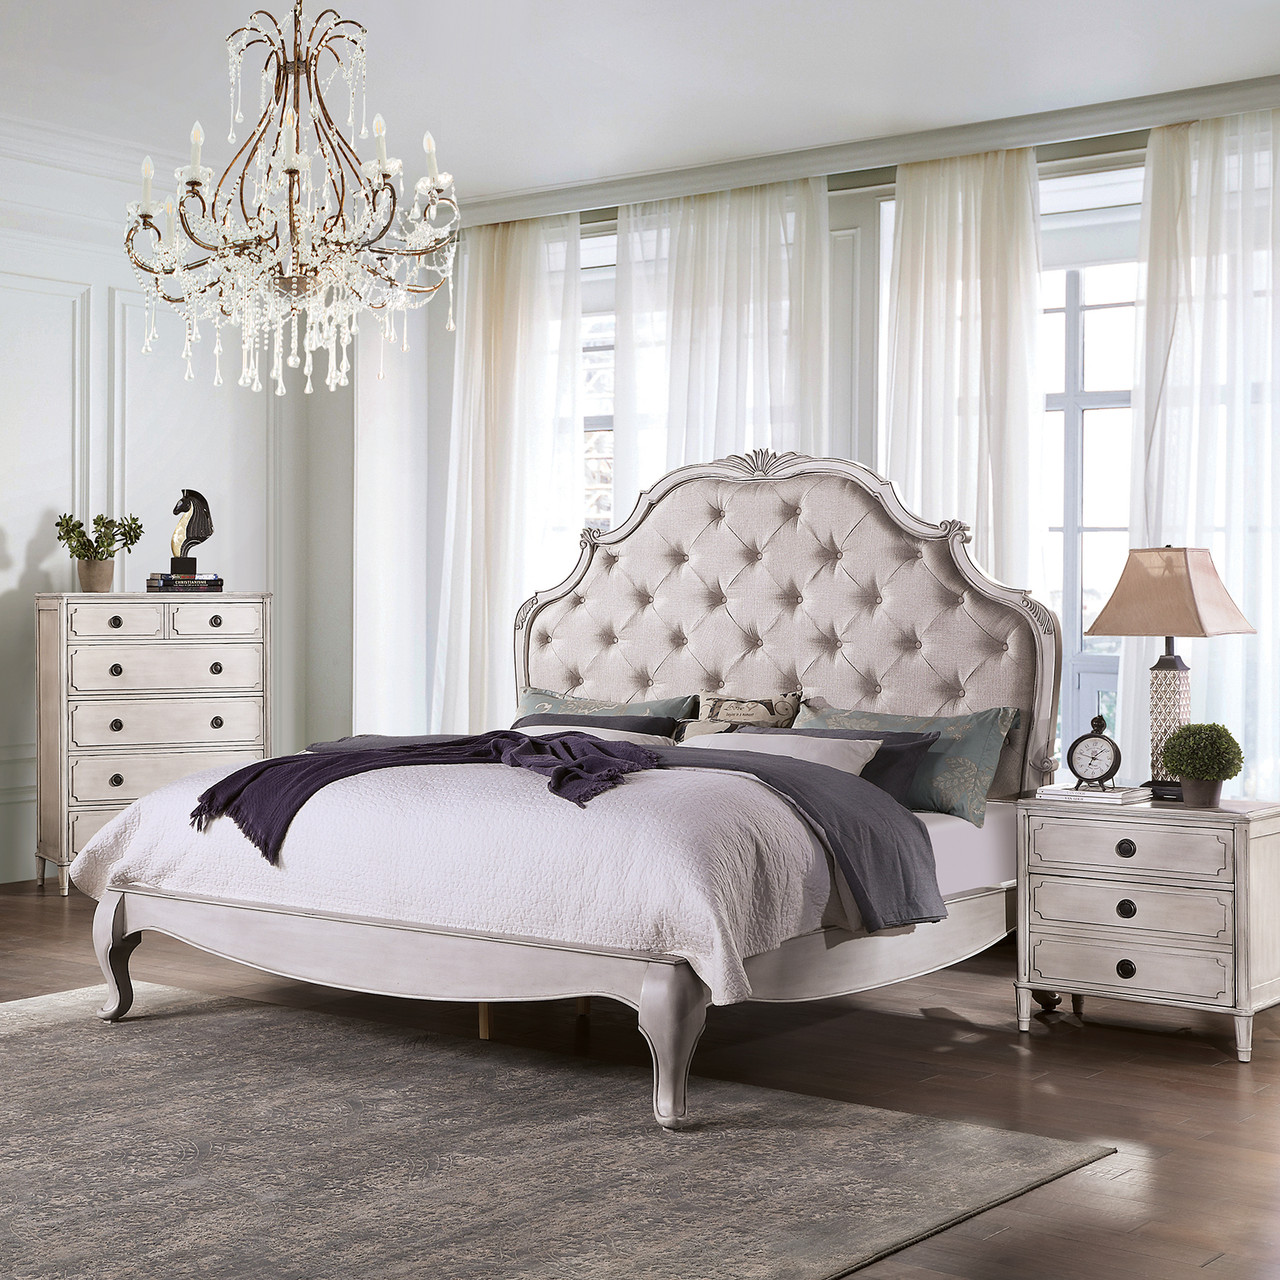 The Esther E King Bed At Furniture Express Hawaii Hawaii S Largest Online Source For Furniture All Items Ship To The Hawaiian Islands Free Shipping To Hawaii Serving Honolulu Oahu Maui Kauai Big Island